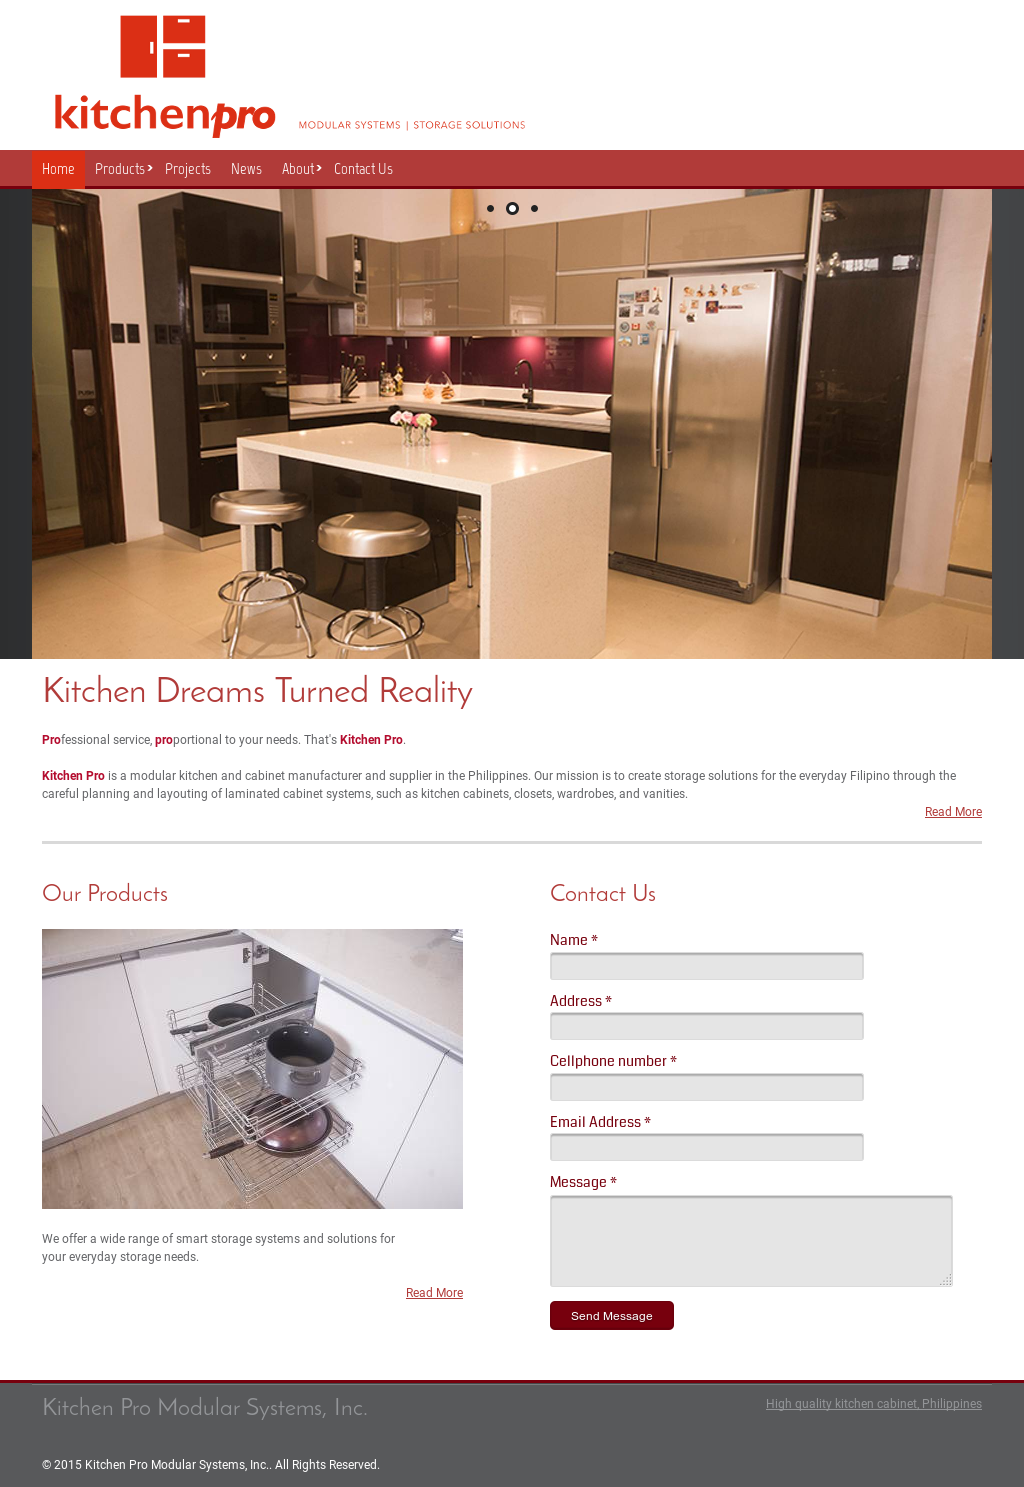 kitchen pro cabinets kitchen pro modular systems competitors revenue and employees owler company profile